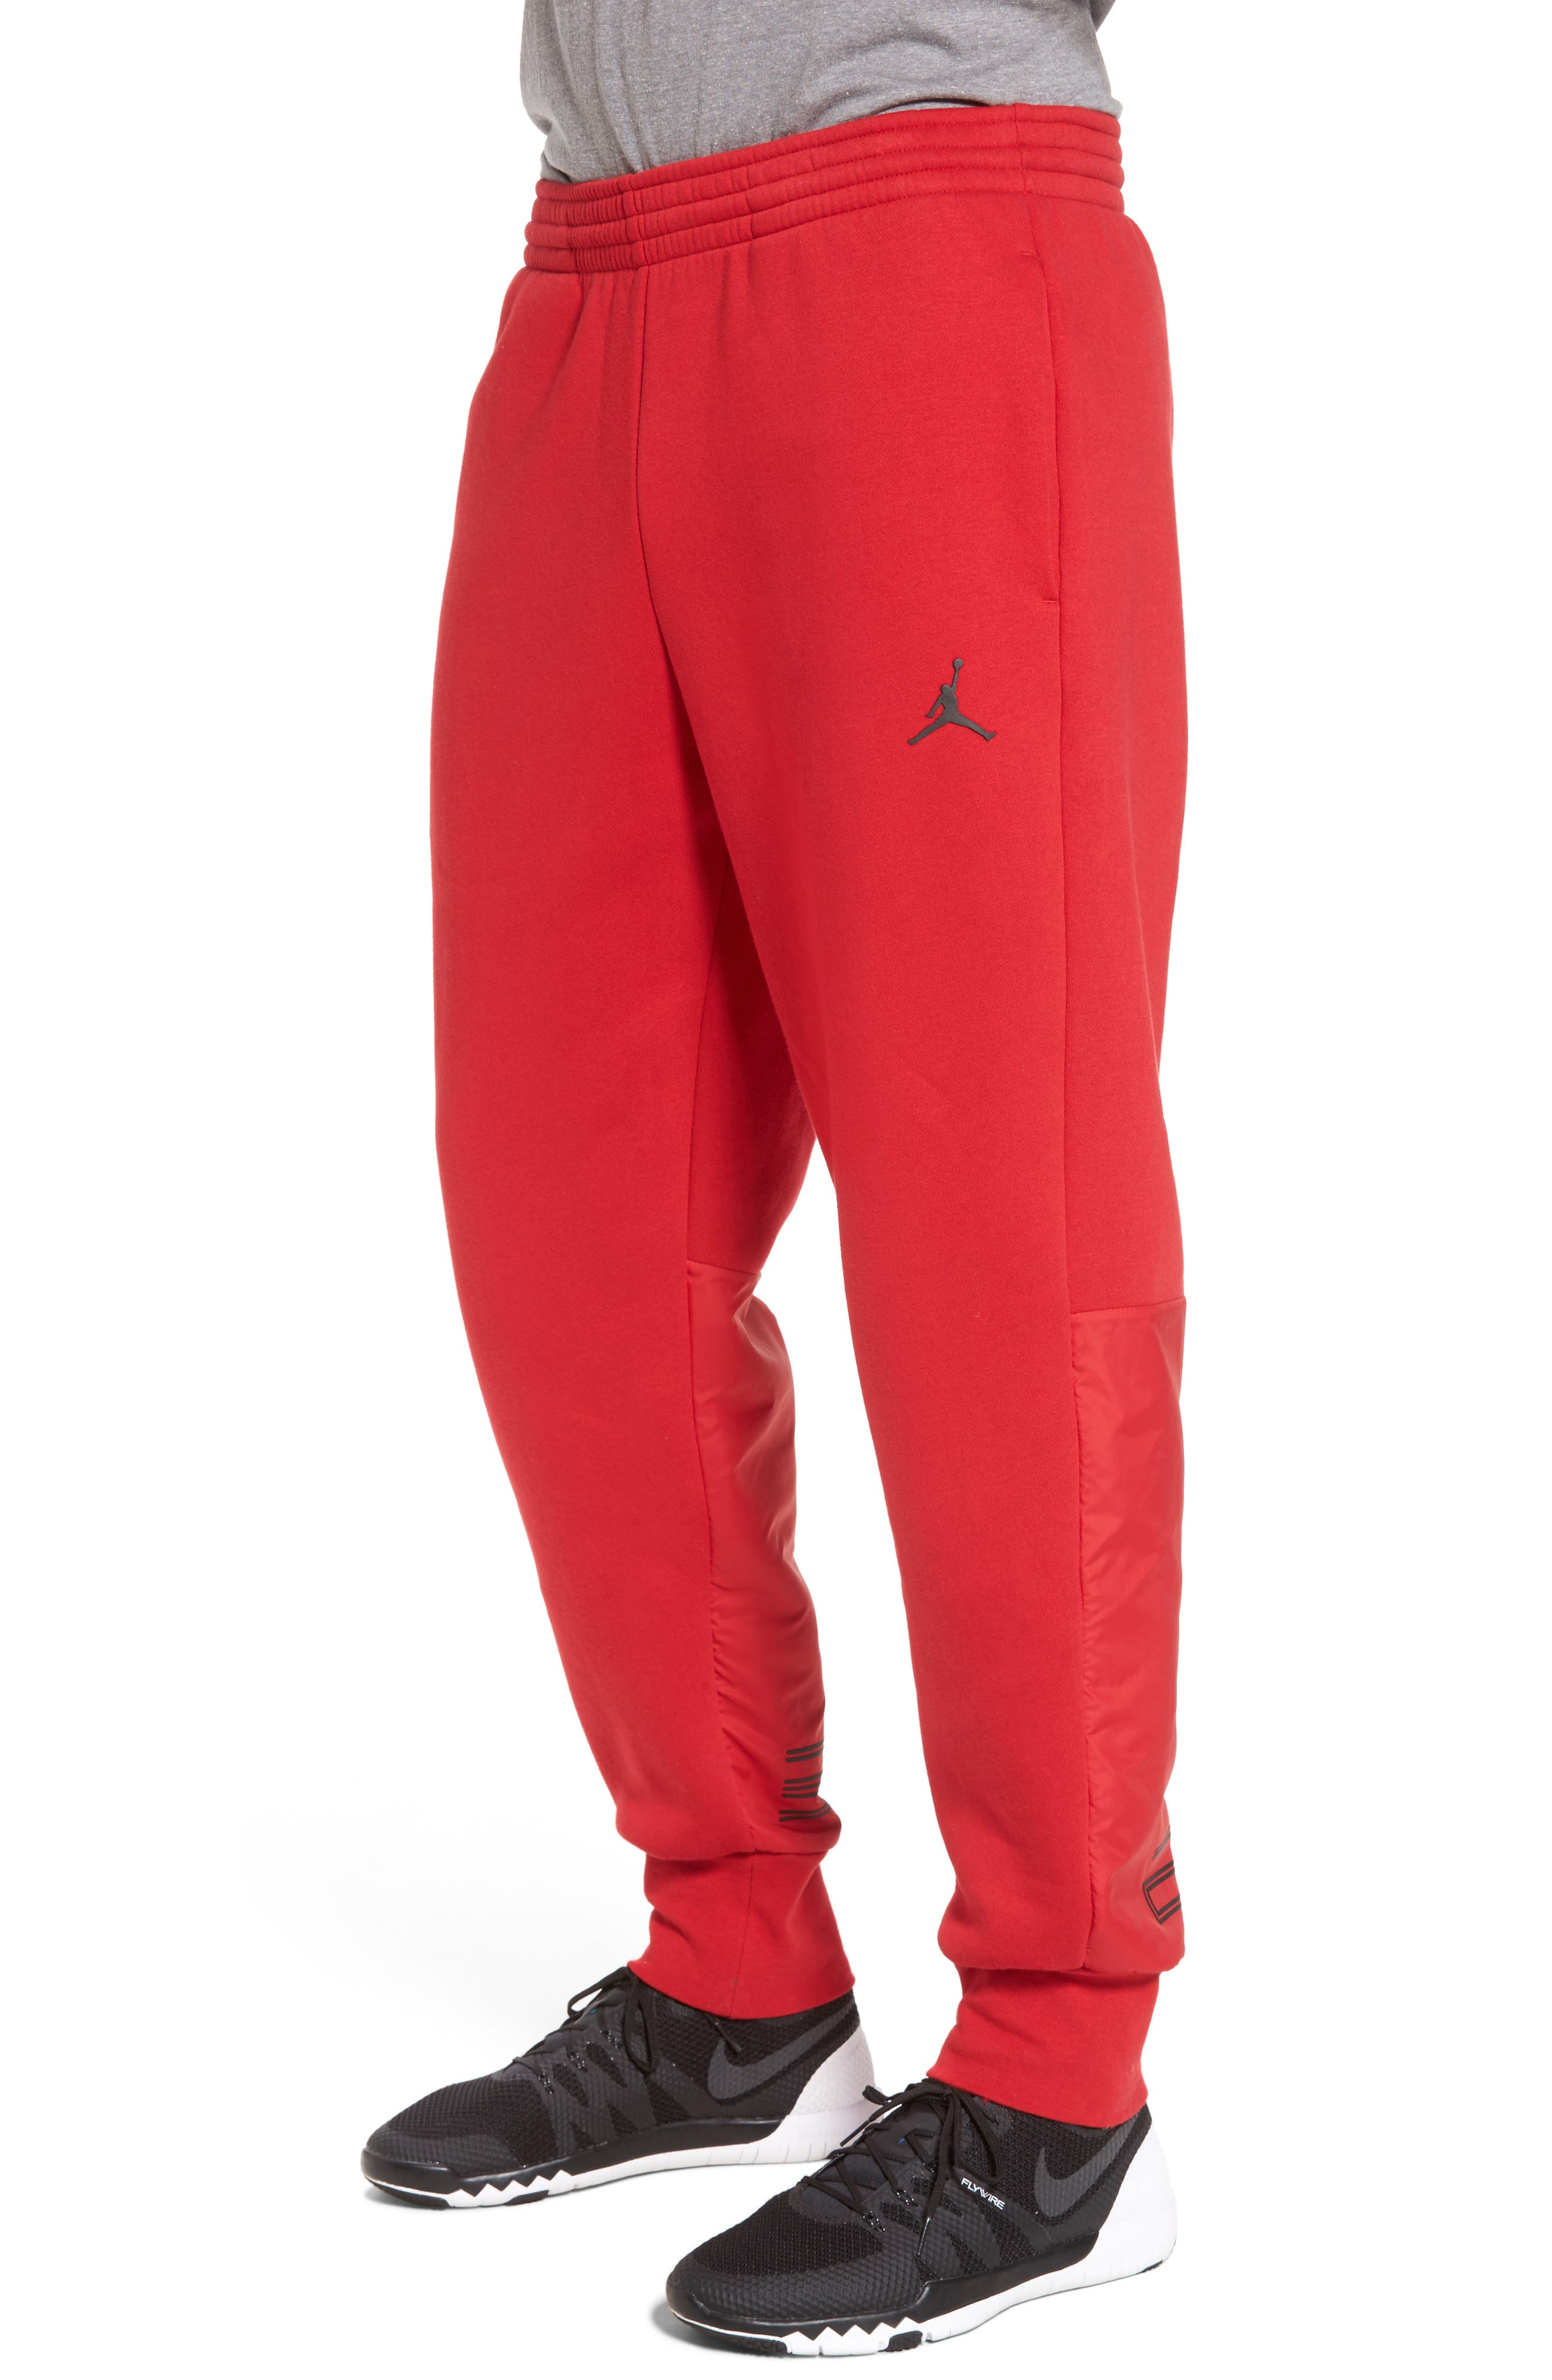 Jordan AJ11 Hybrid Pants,                             Alternate thumbnail 3, color,                             Gym Red